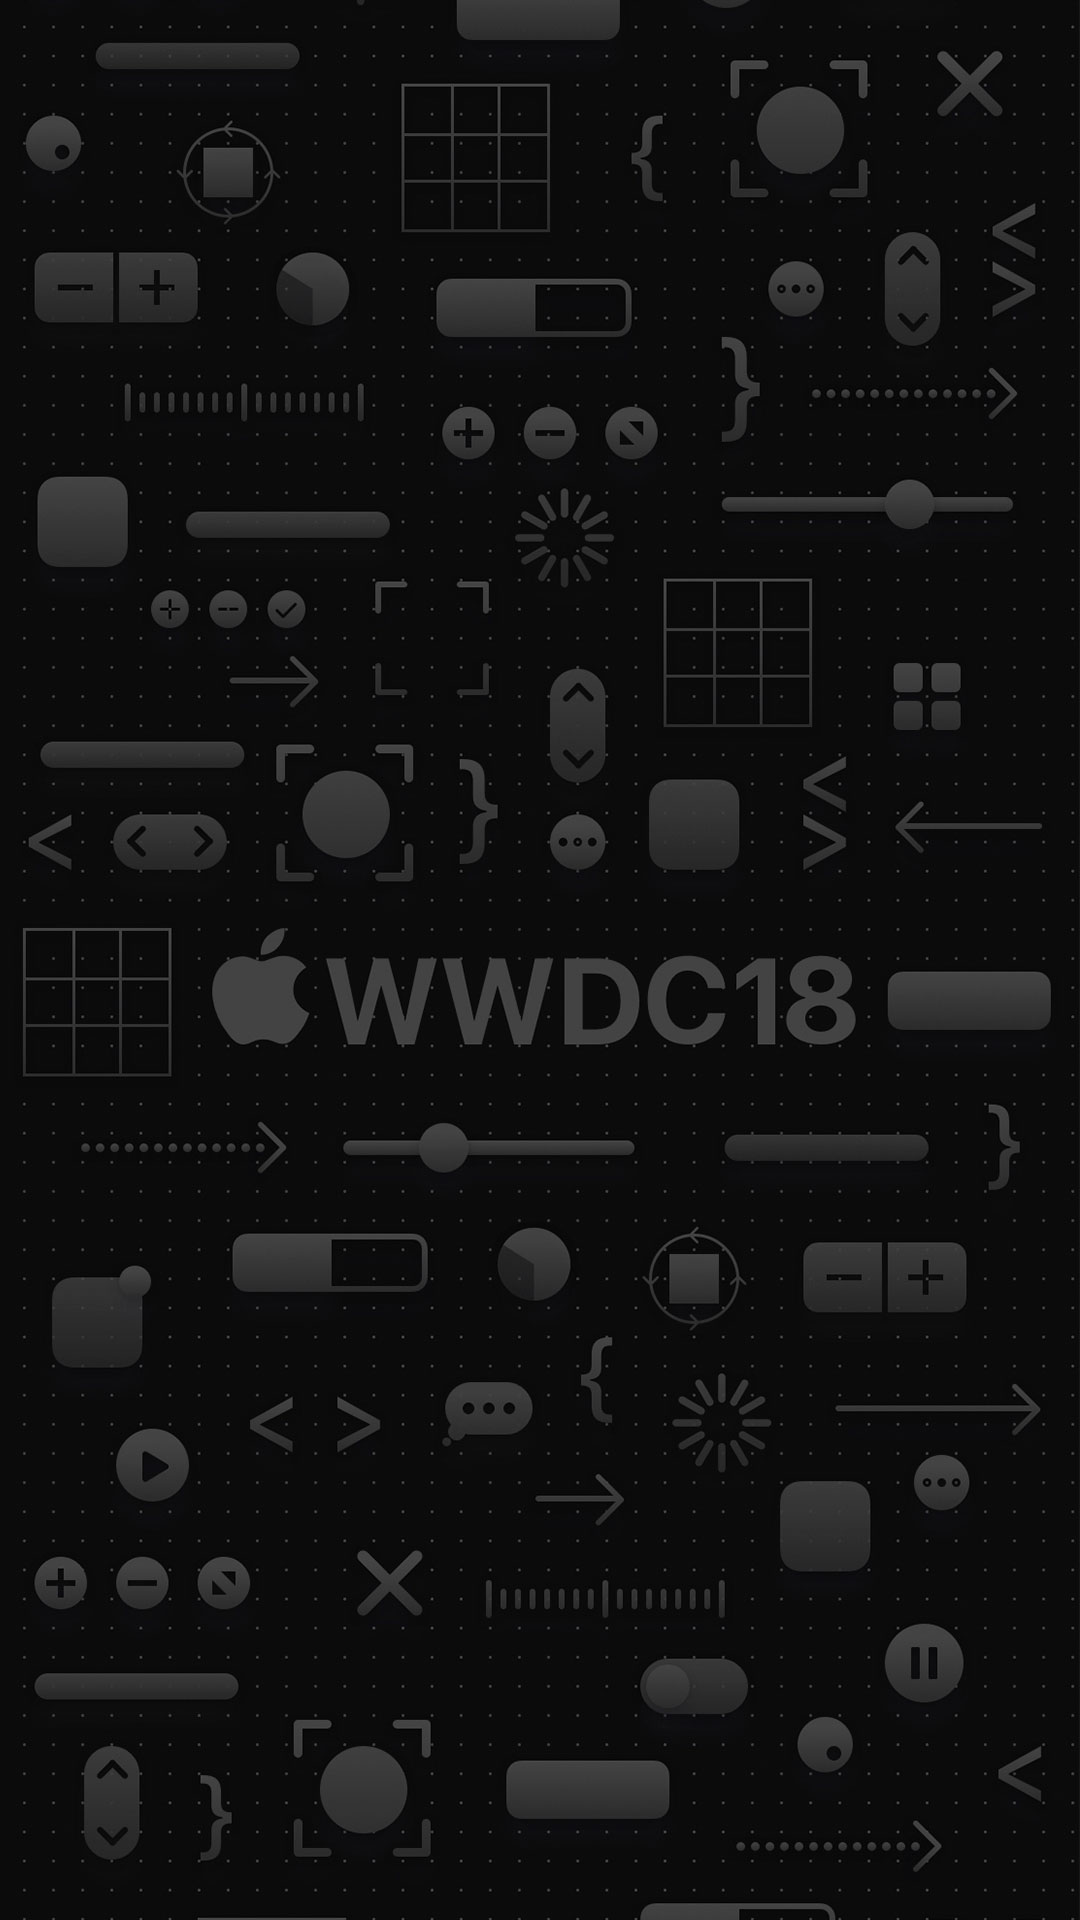 iPhone wallpaper wwdc icons black 3Wallpapers : notre sélection de fonds d'écran du 16/03/2018